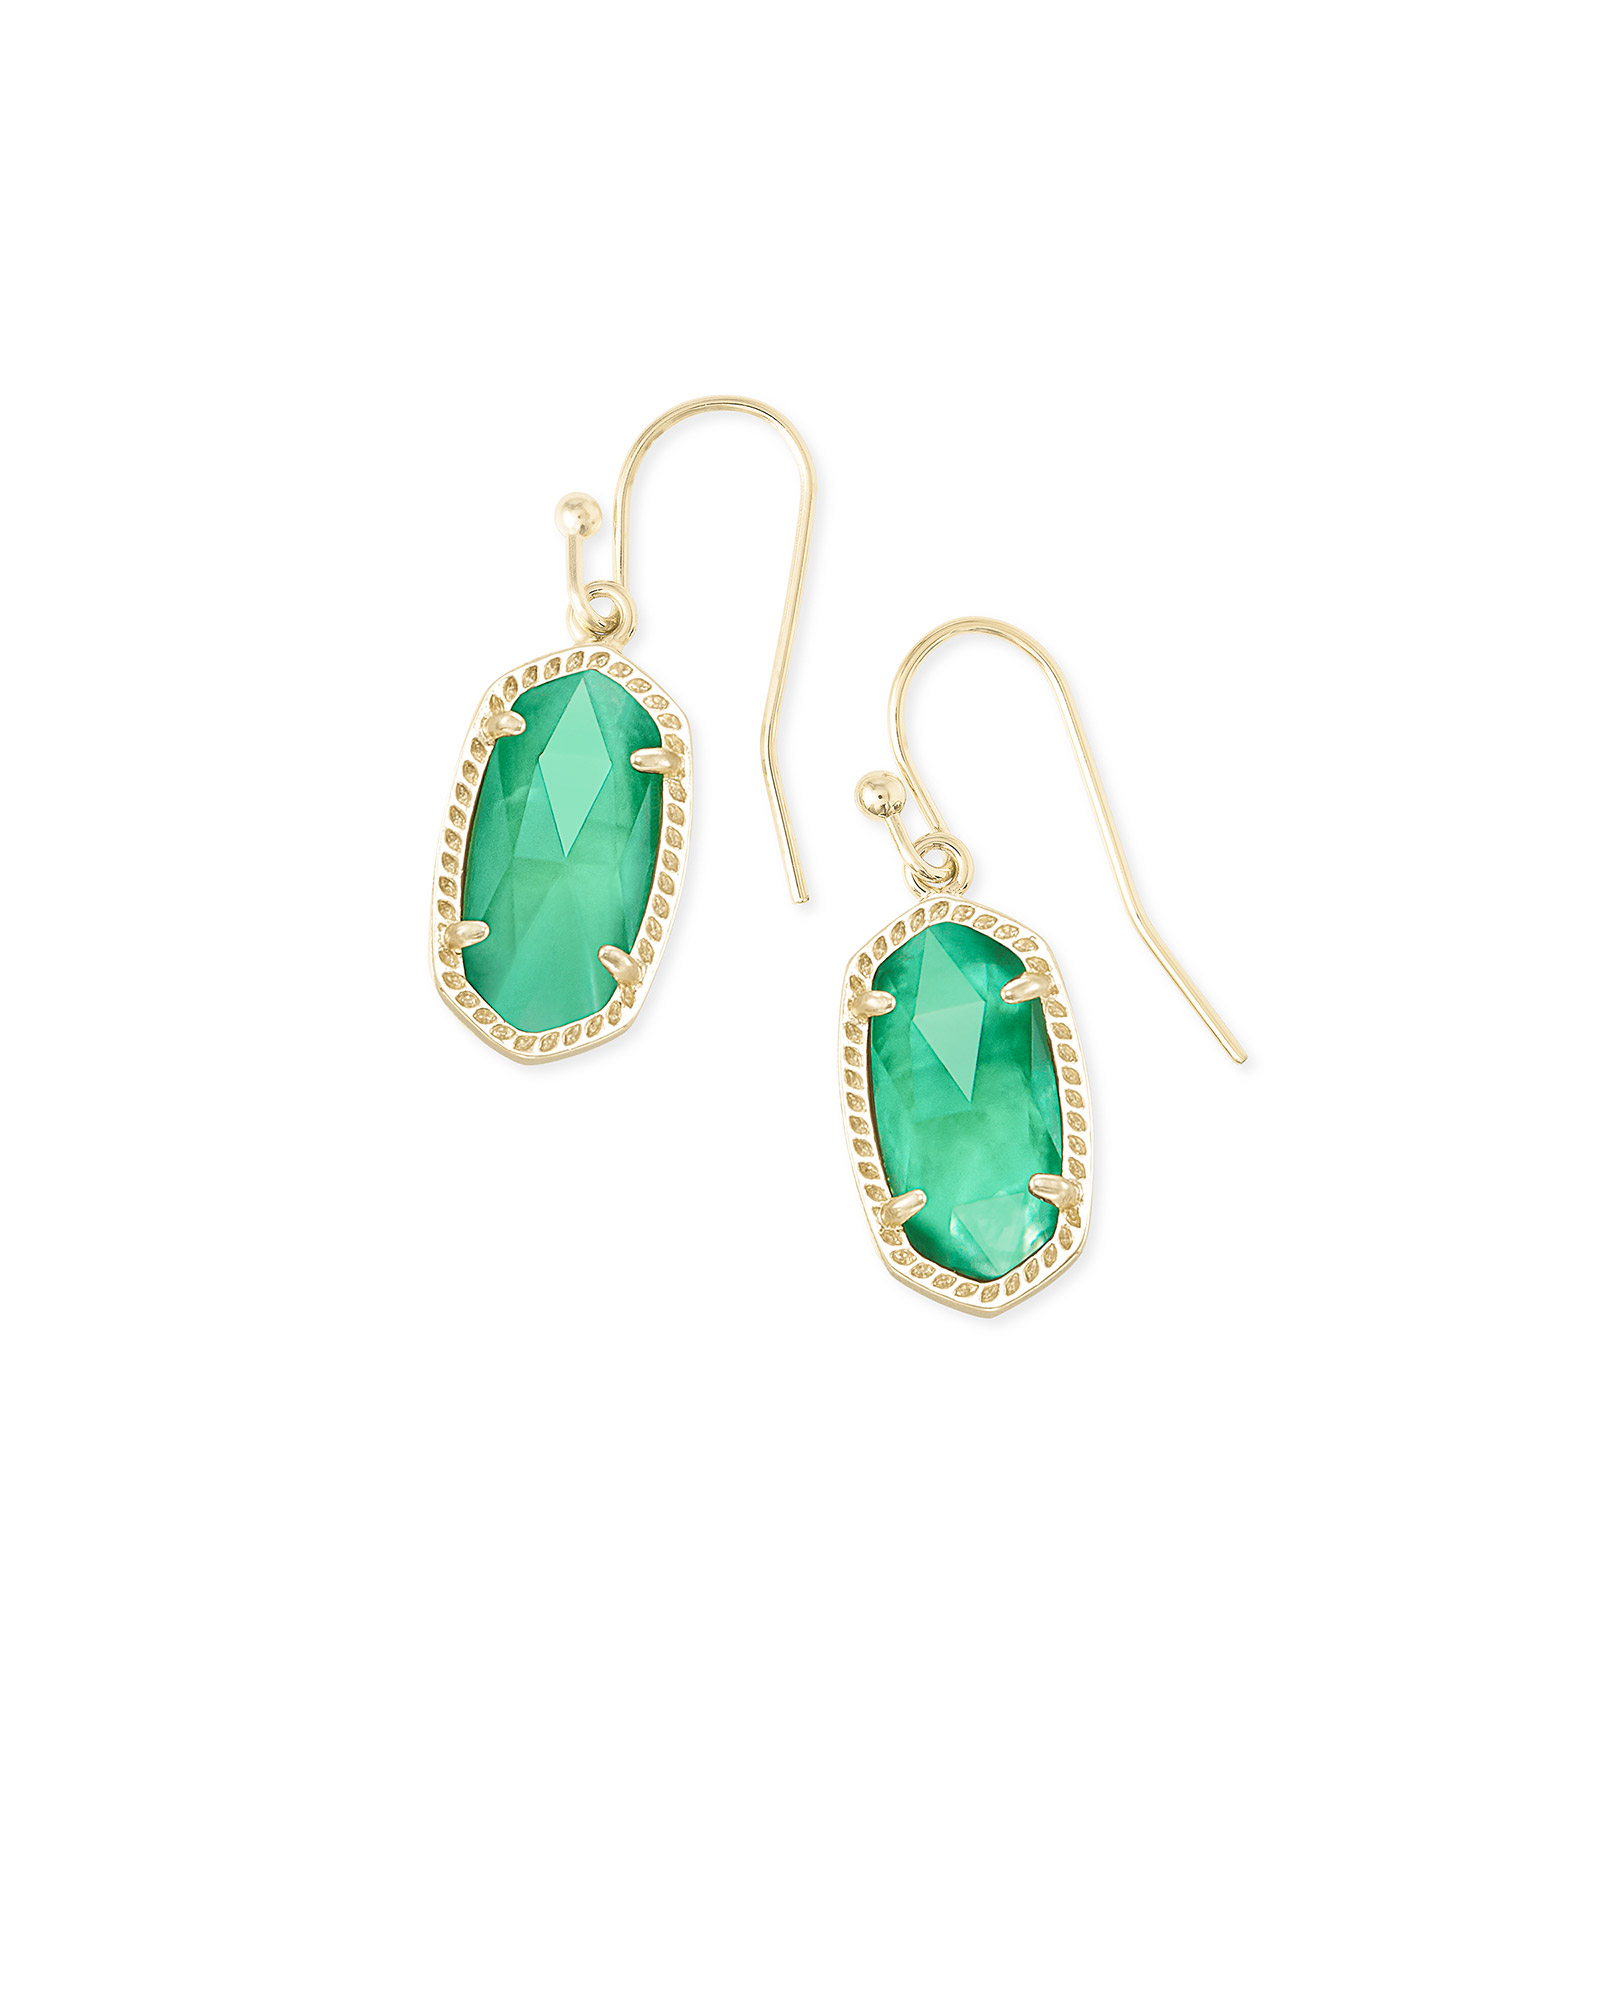 Lee Gold Drop Earrings in Jade Green Illusion